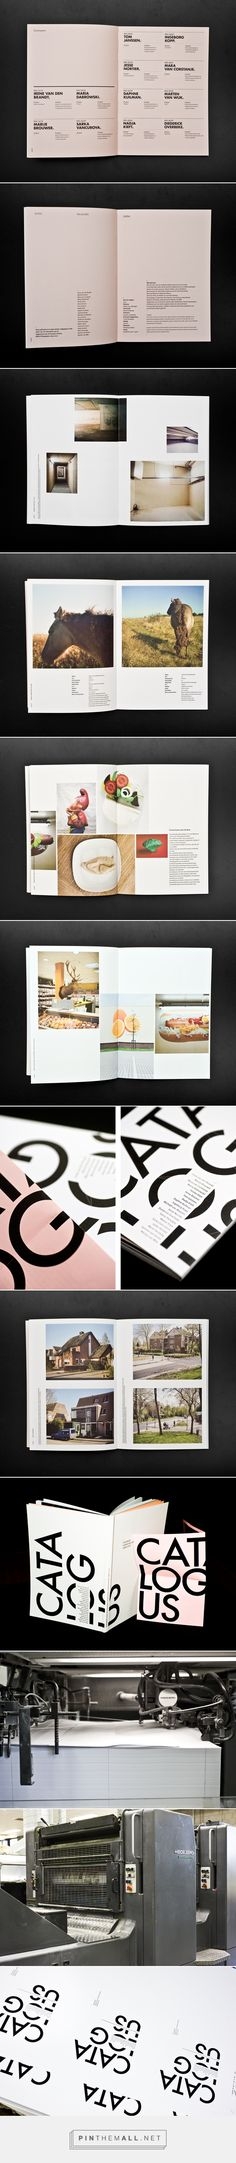 CATA - LOG - US on Behance